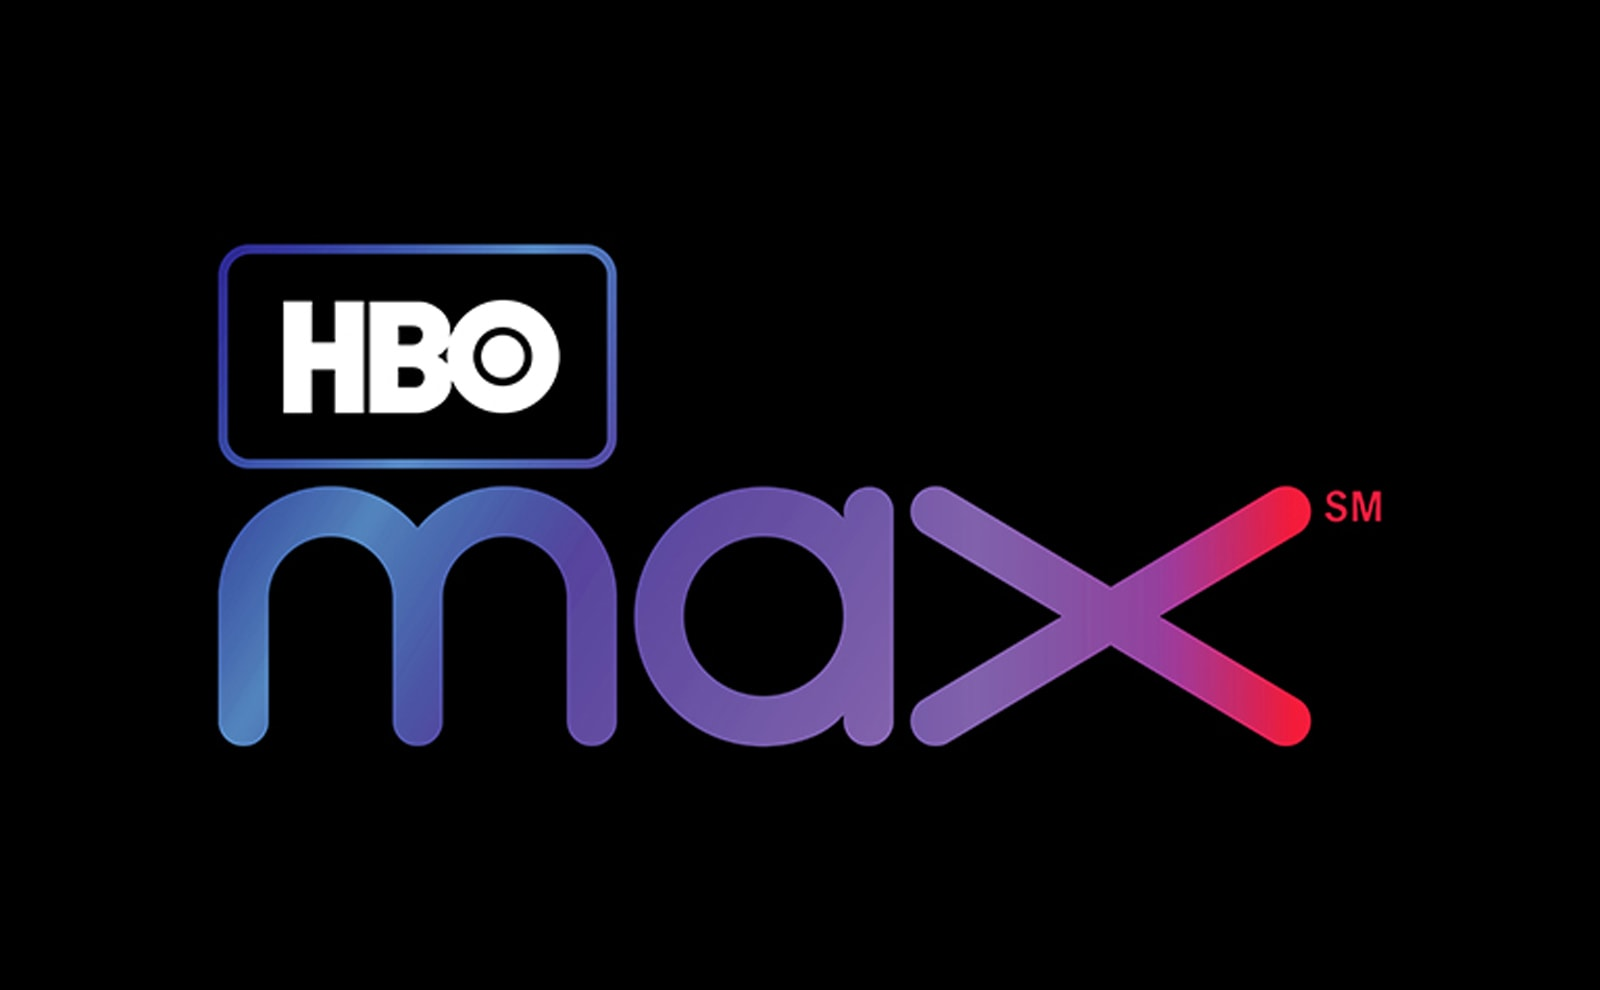 hbo max Archives - Tore Willmar